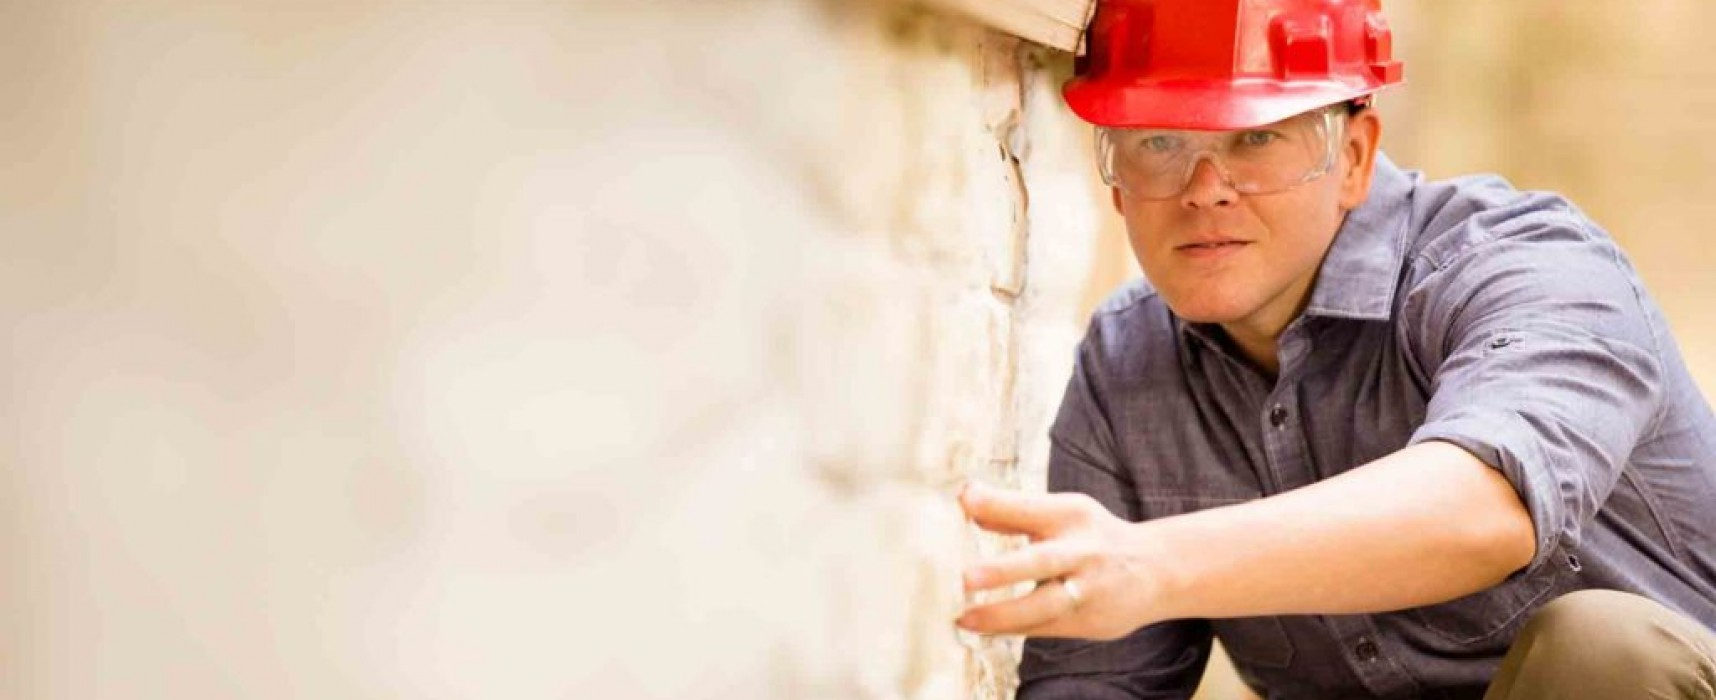 Scrutinizing Real Estate Listings and Hiring a Trustworthy Home Inspector